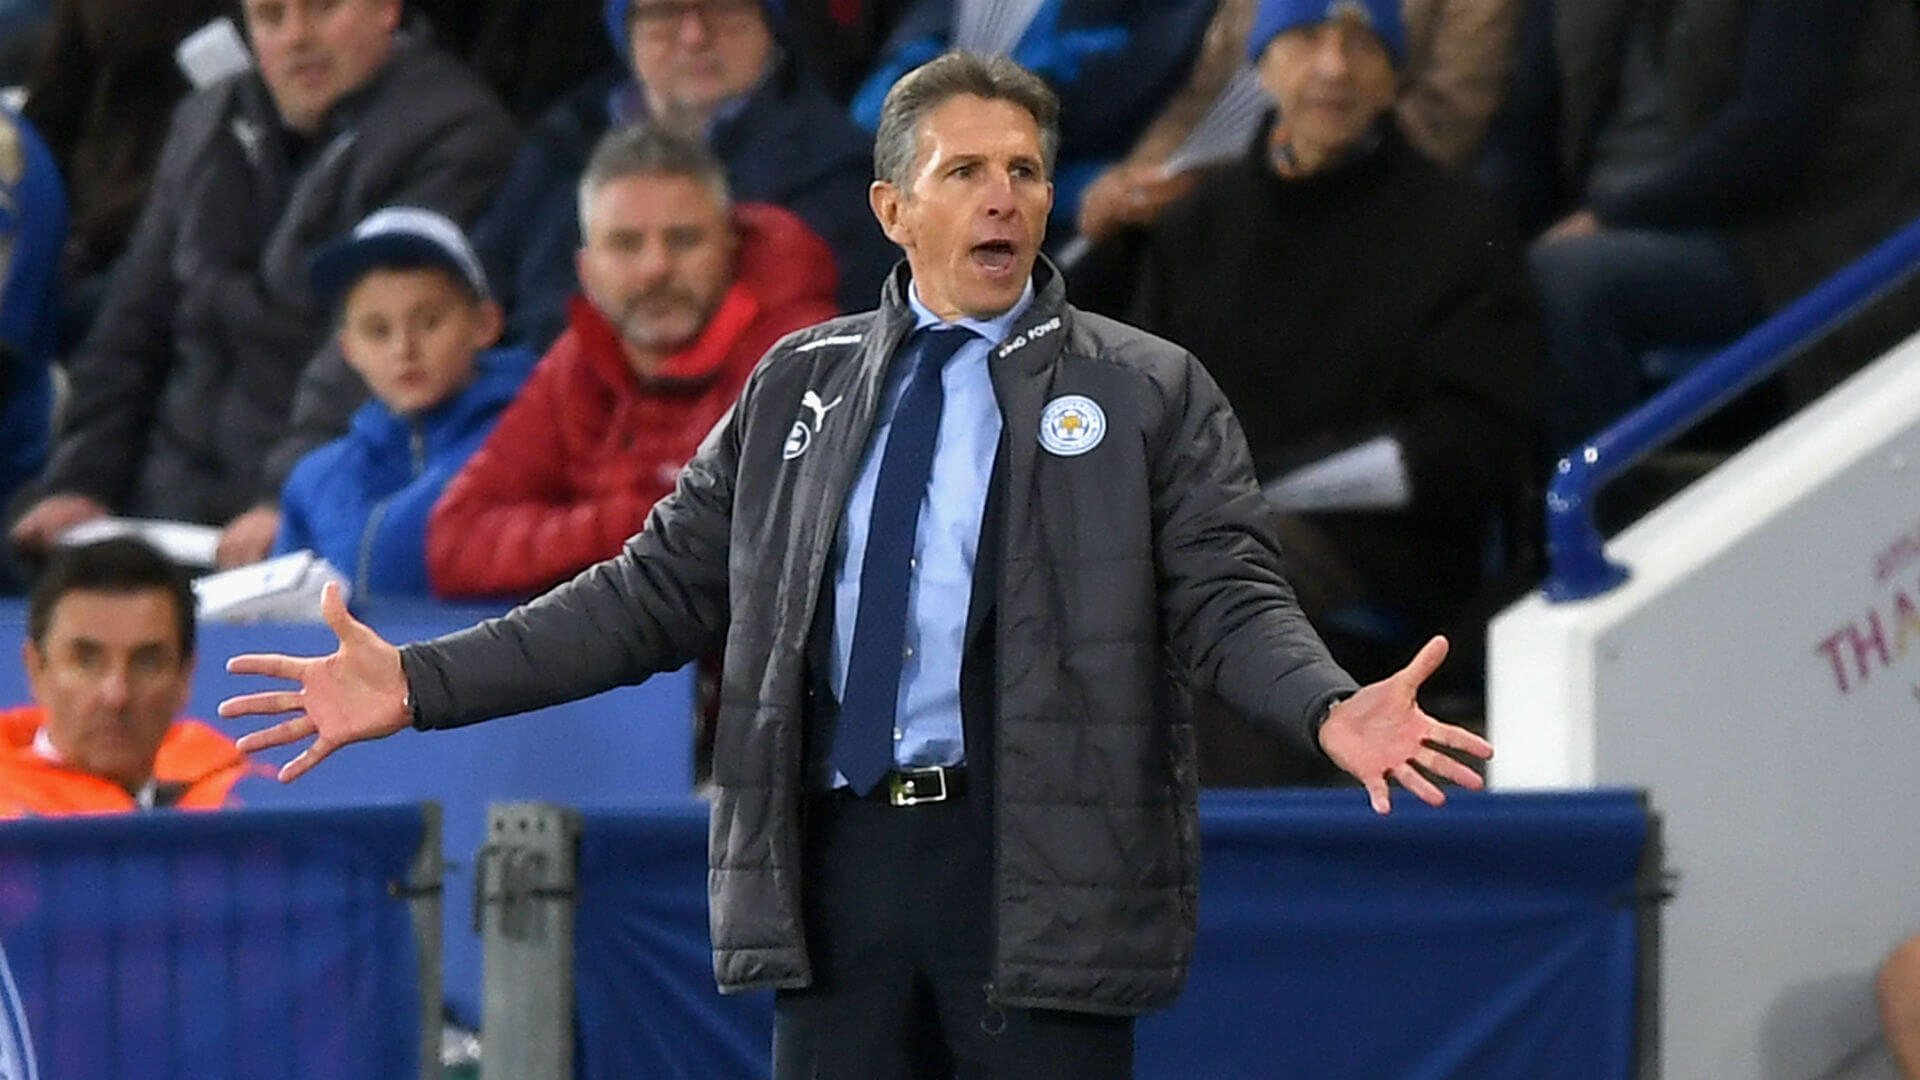 Leicester City wins first match with Claude Puel in charge